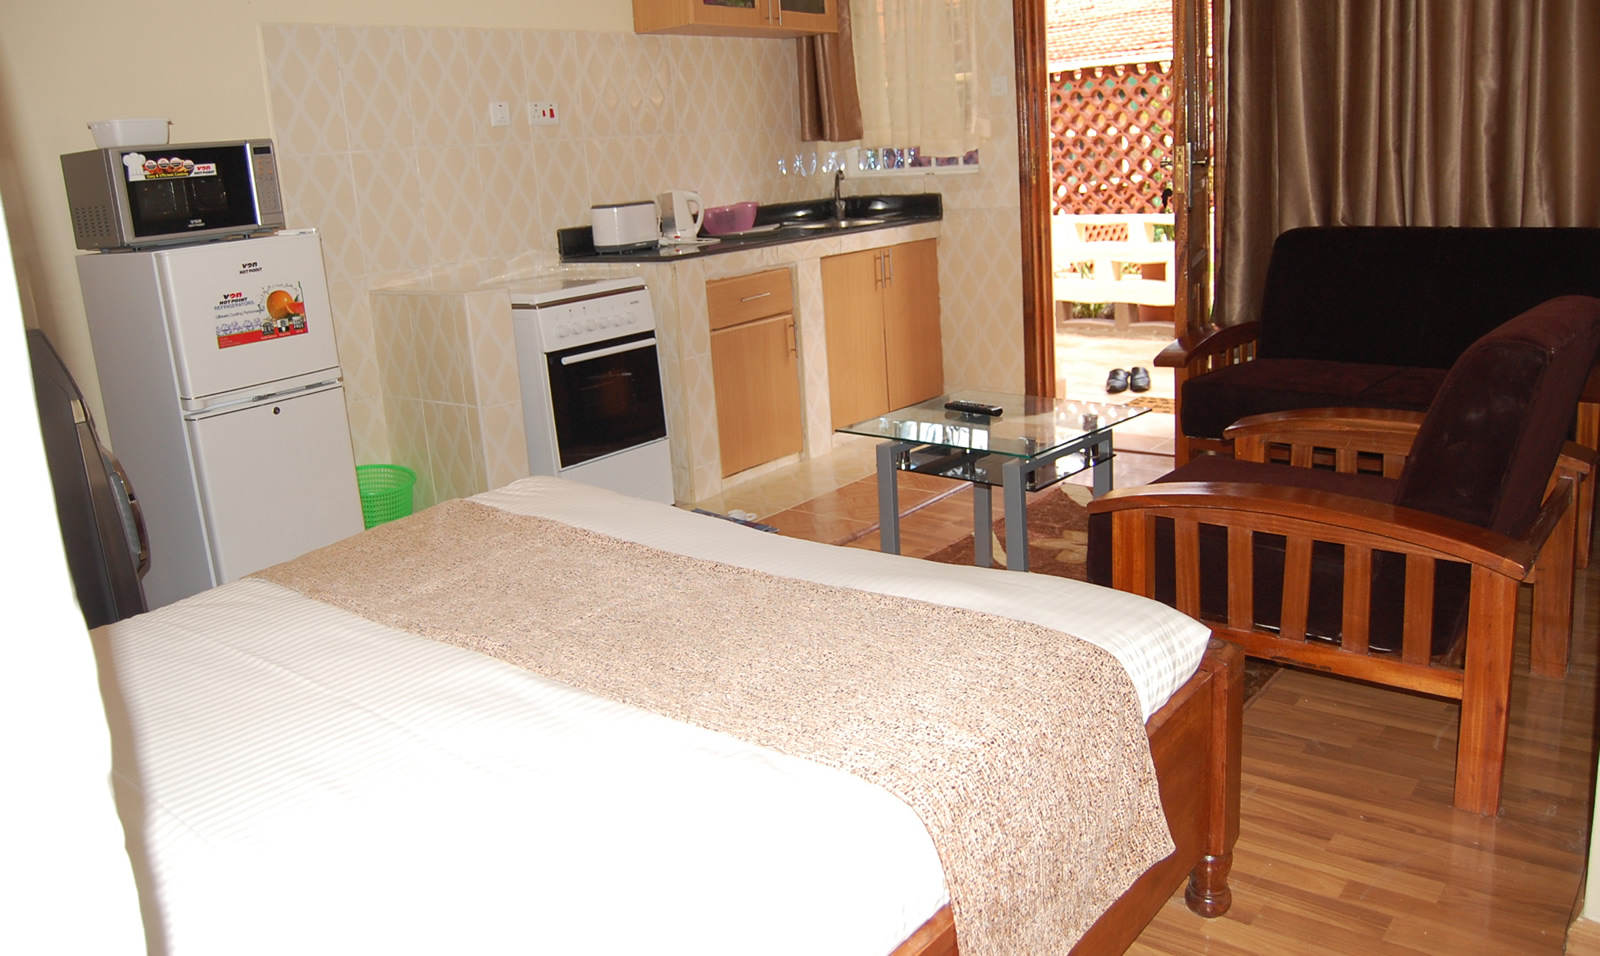 Safi Hotel Image Gallery